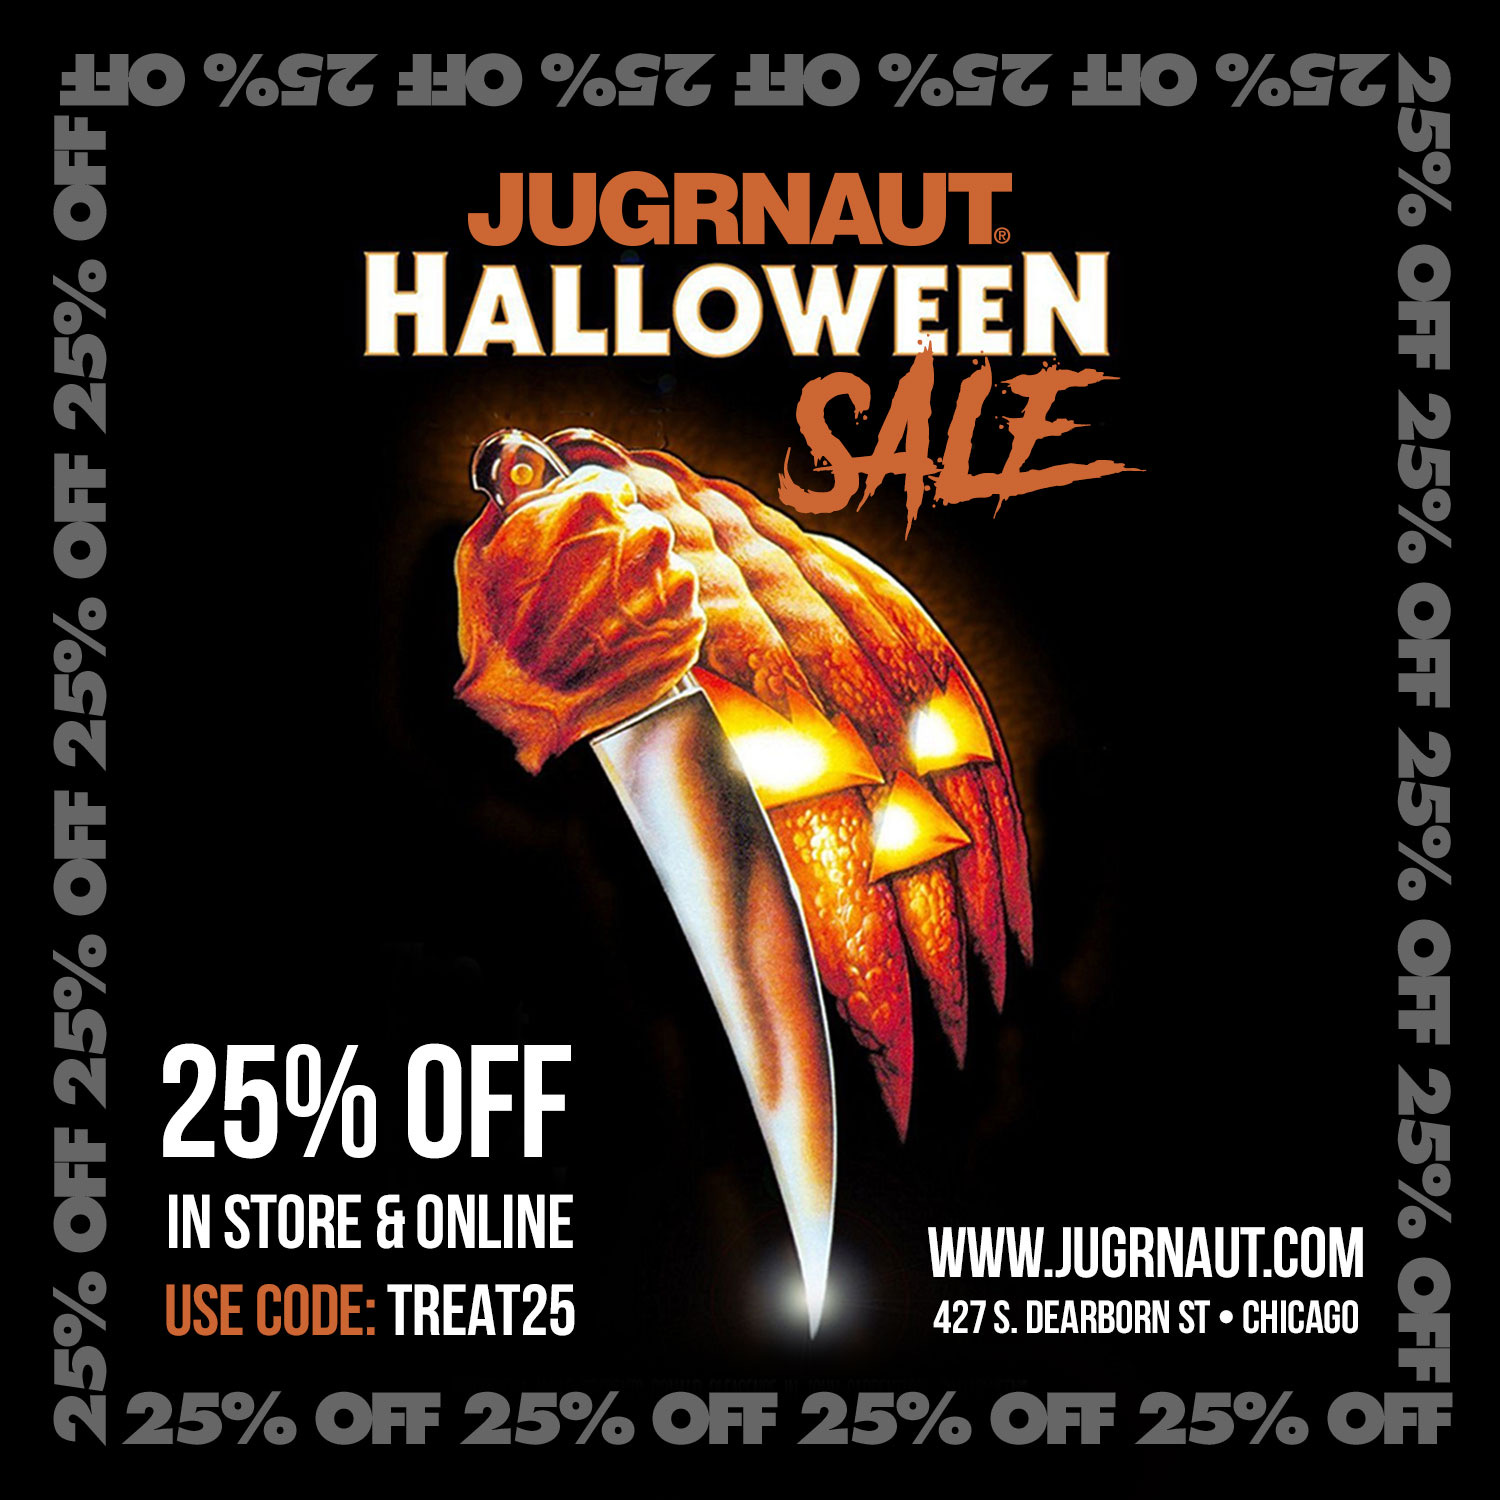 jugrnaut halloween sale 25% off in-store and online 10/31/18 only